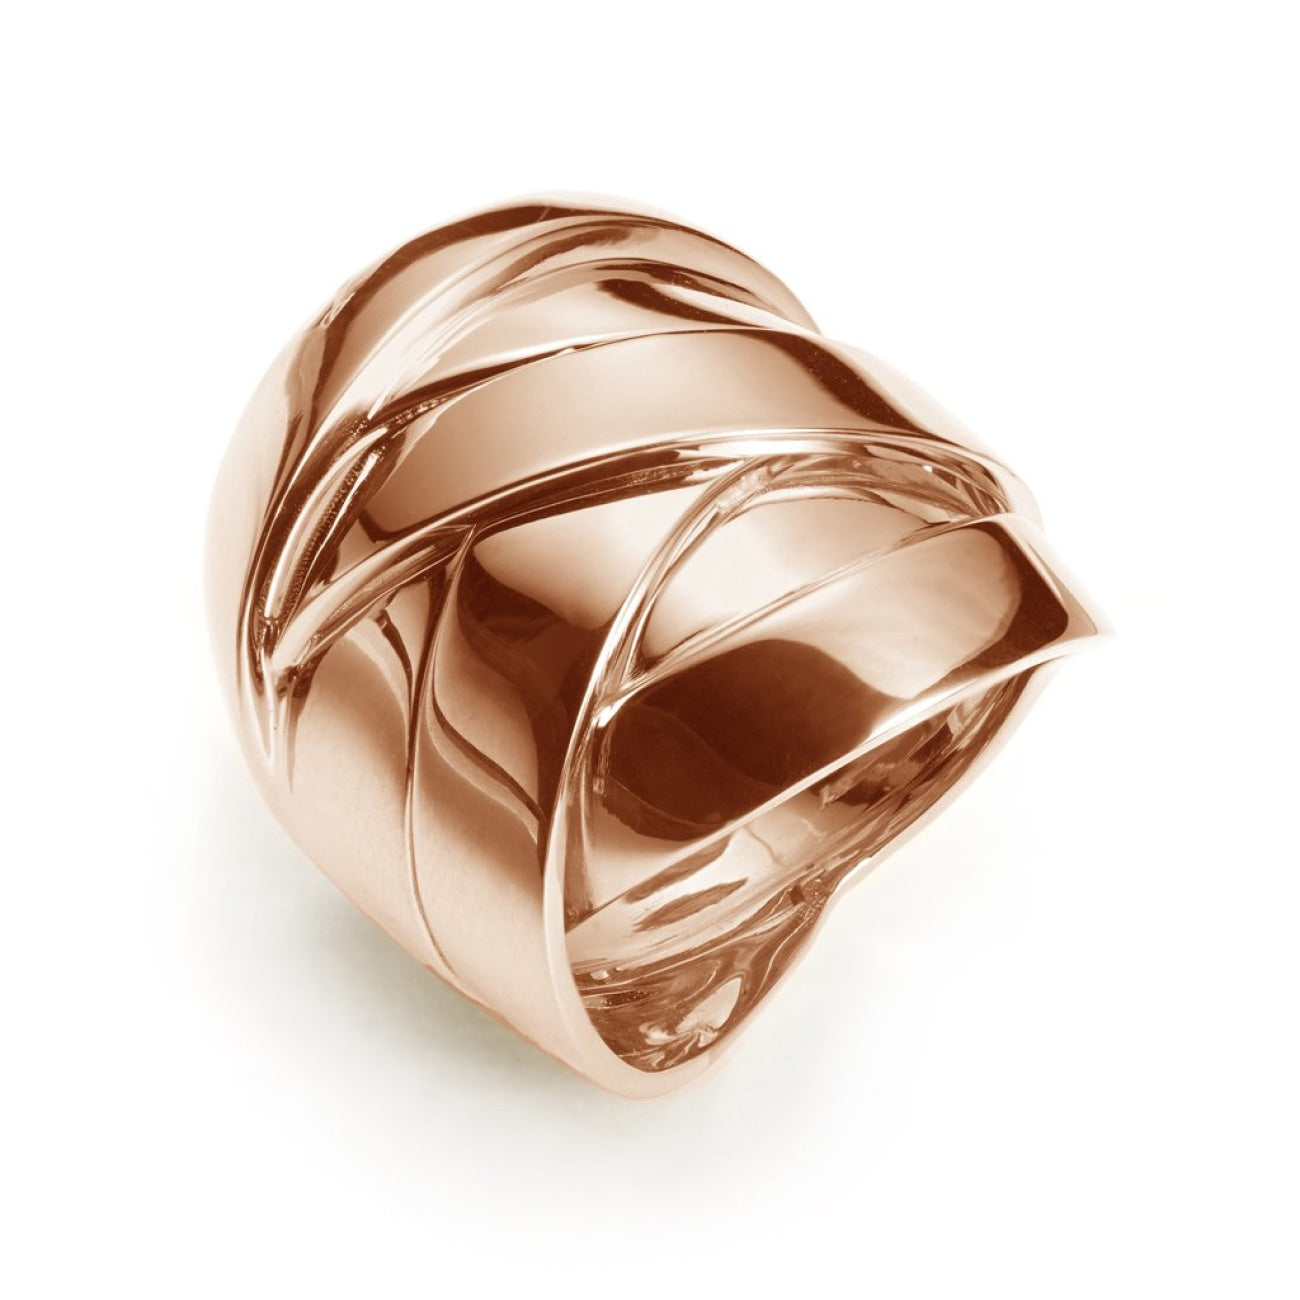 Mattioli Jewelry - Maldamore big ring in rose gold | Manfredi Jewels